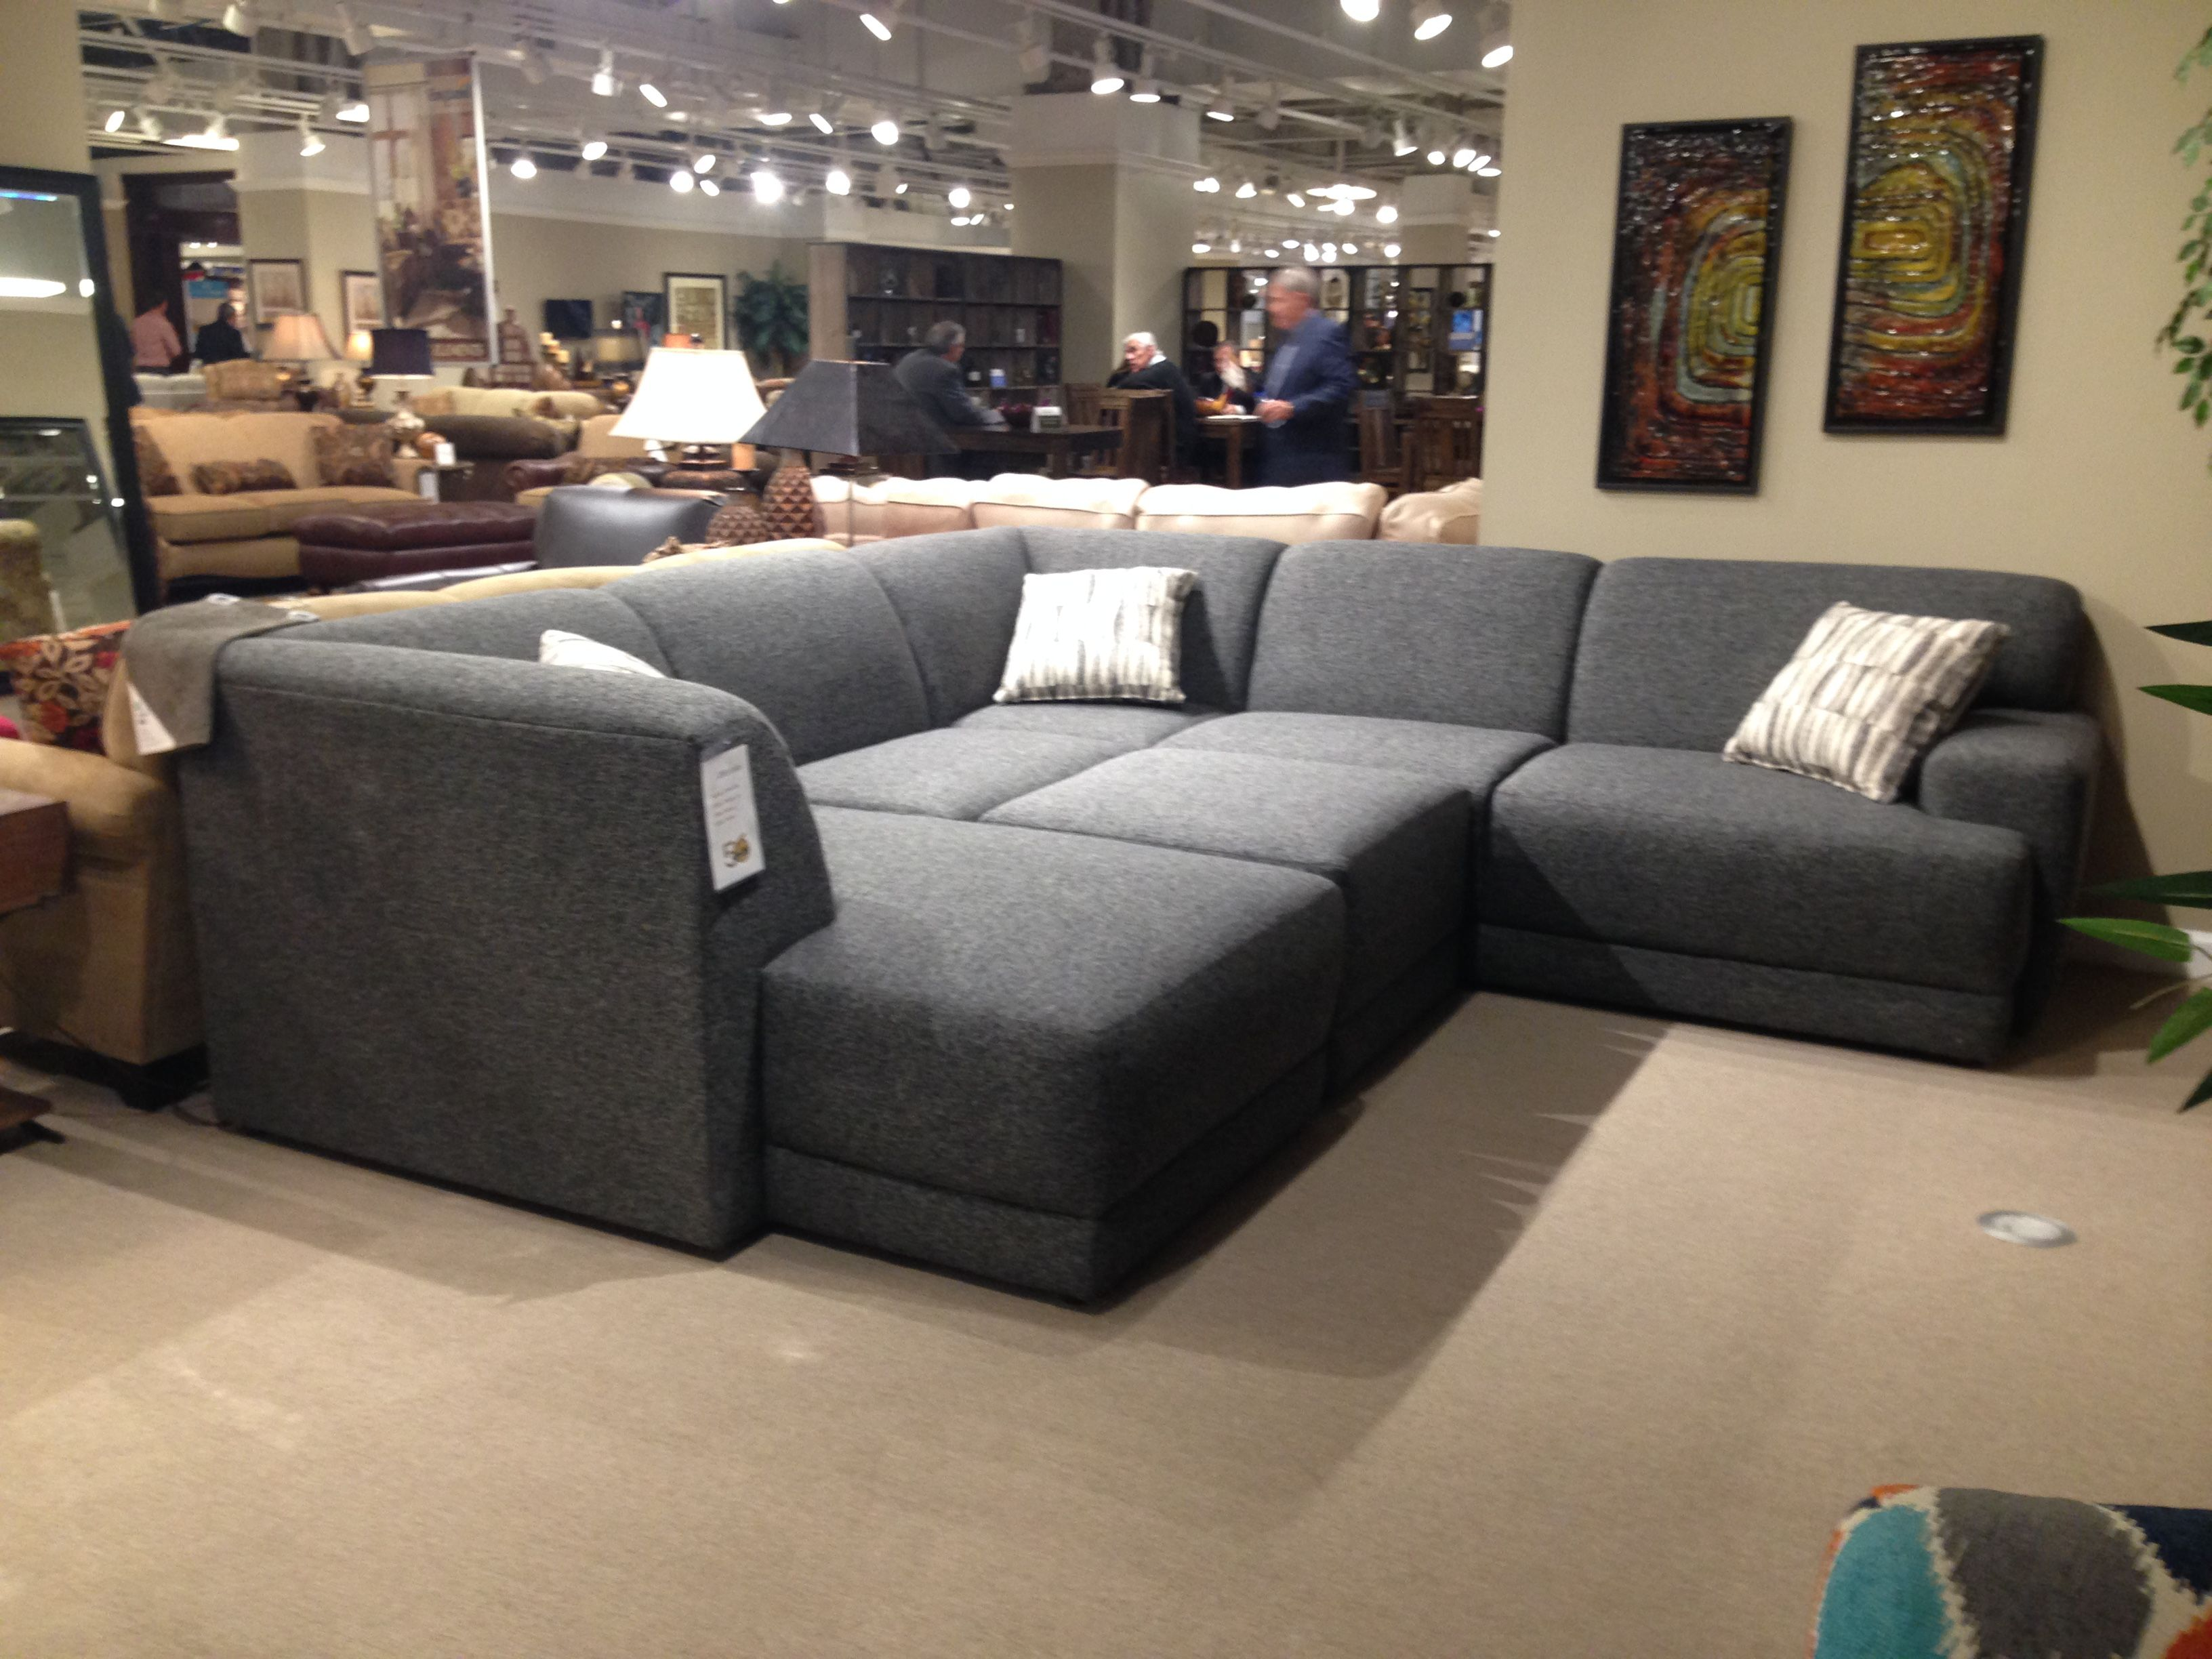 England Furnitureu0027s top selling sectional has added more pieces! Highpoint Furniture Market. In store : england furniture sectional - Sectionals, Sofas & Couches